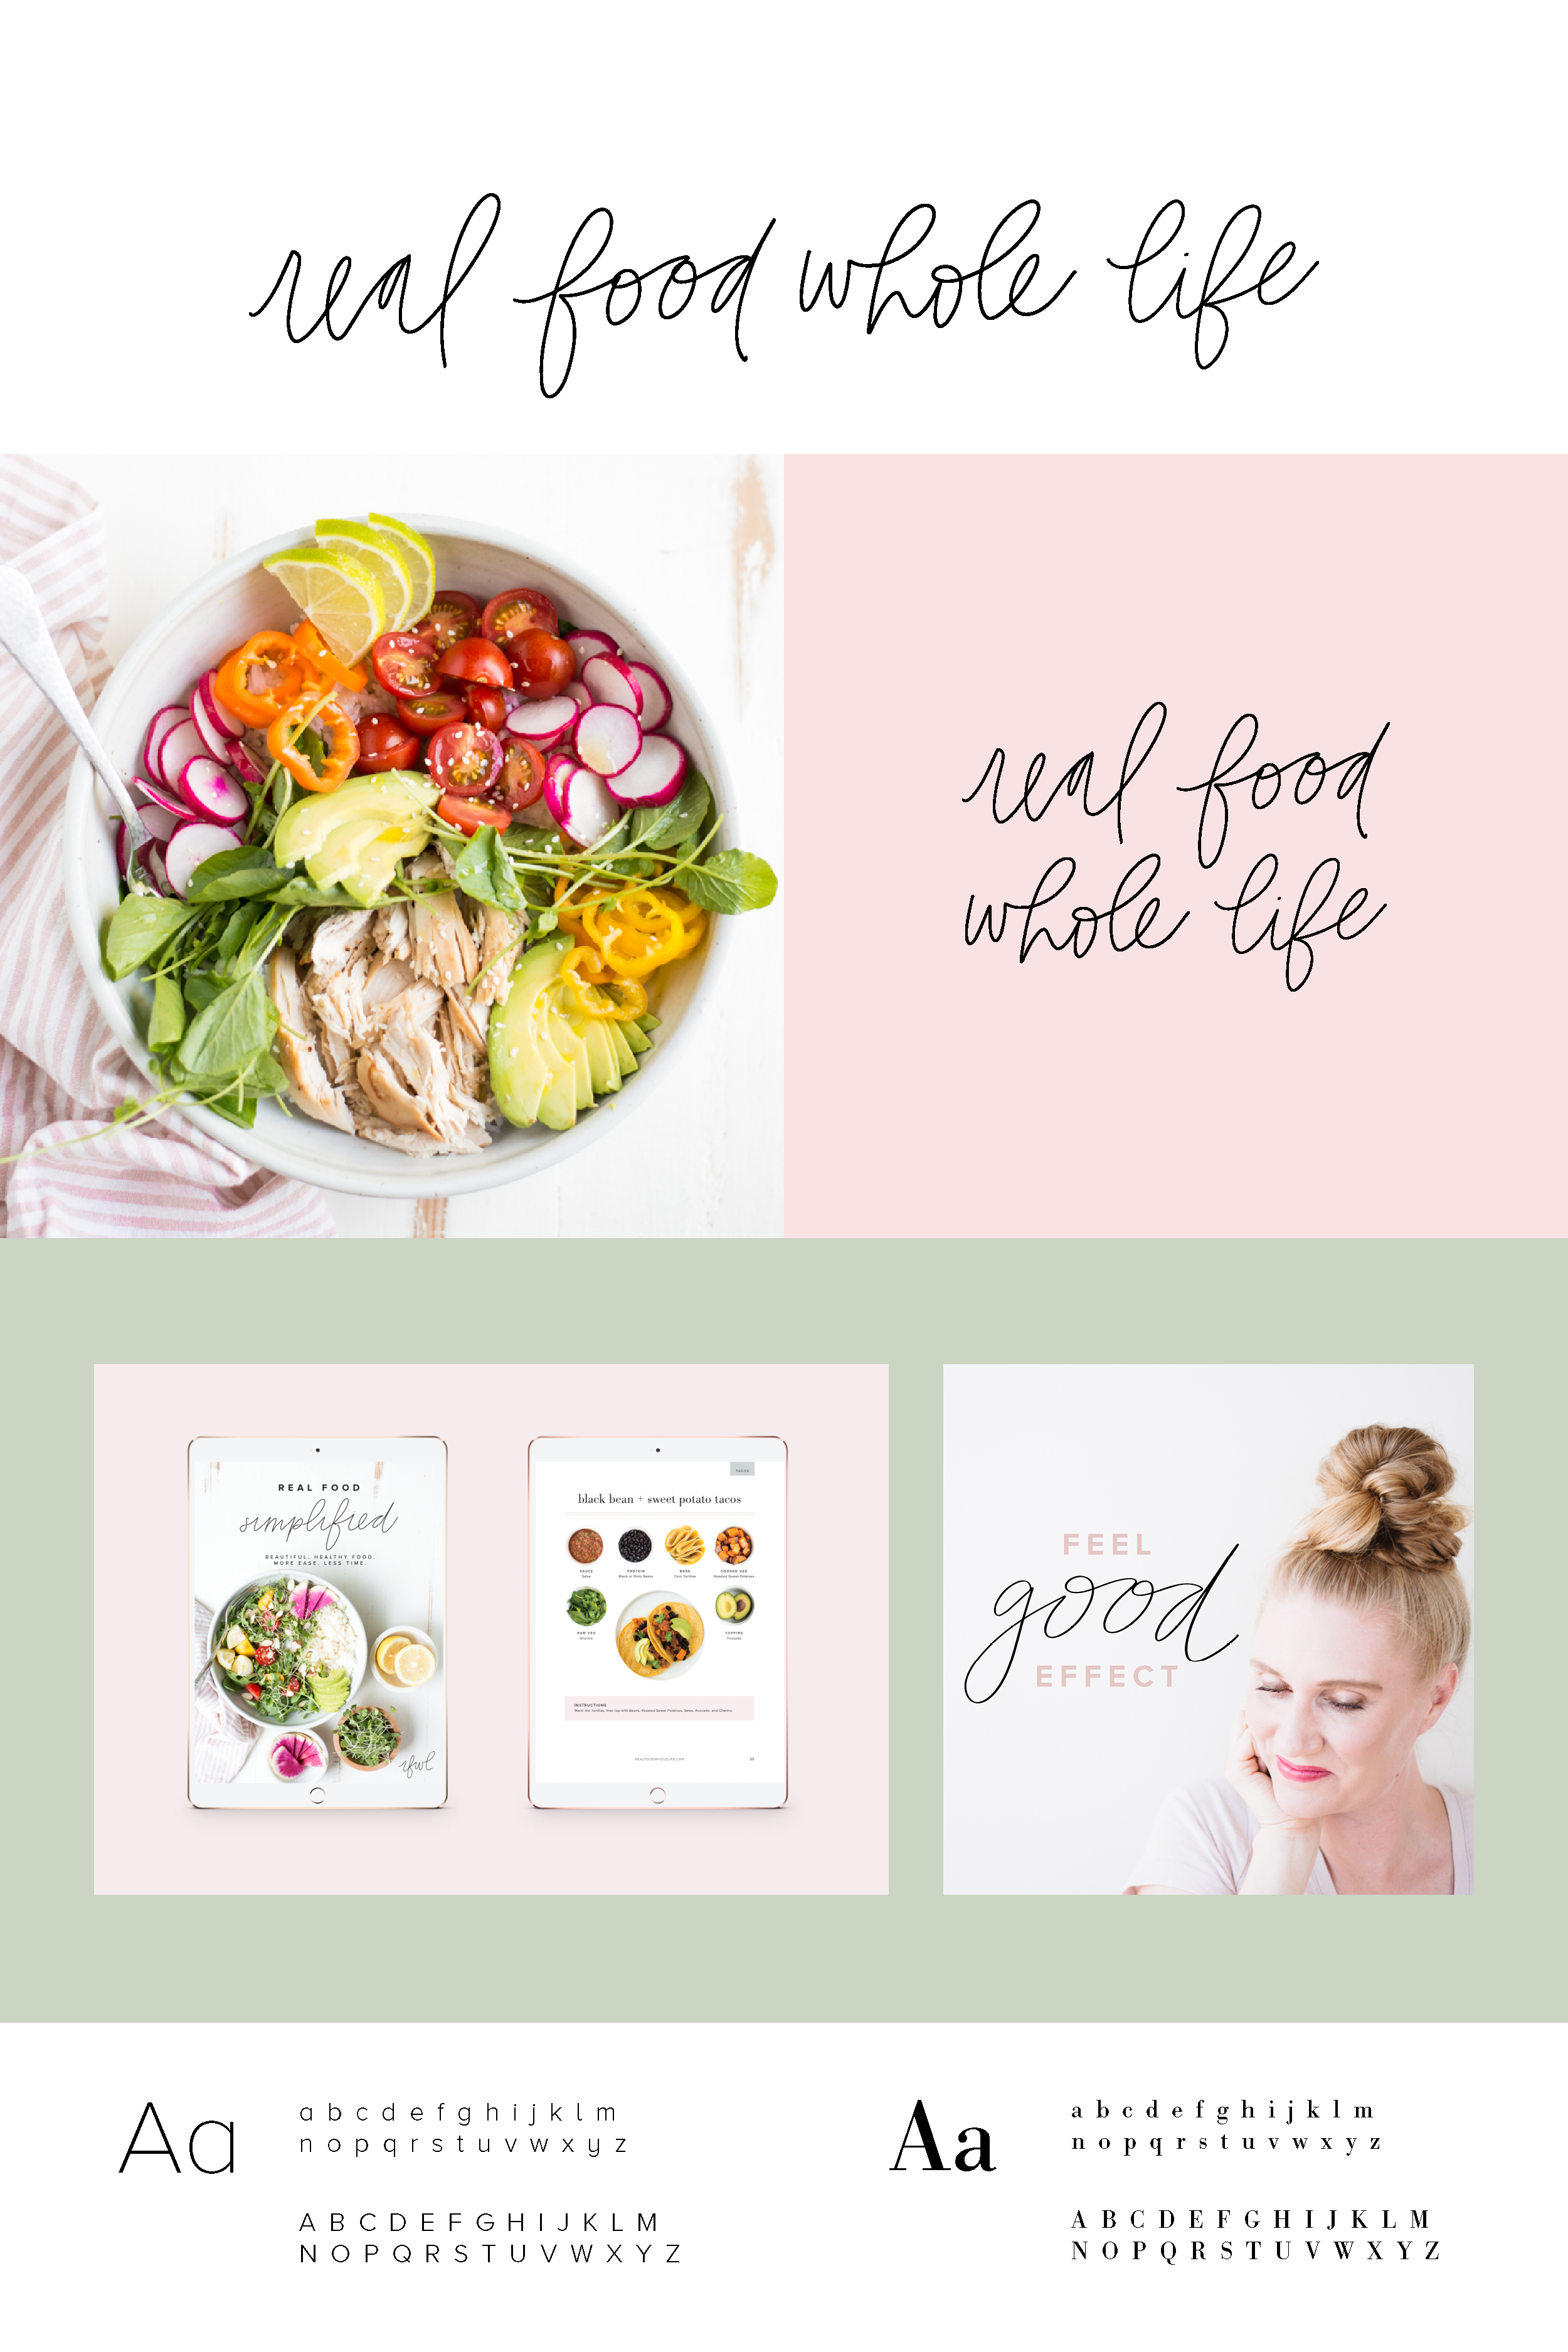 real+food+whole+life+blogger+blog+logo+design+simplified+download